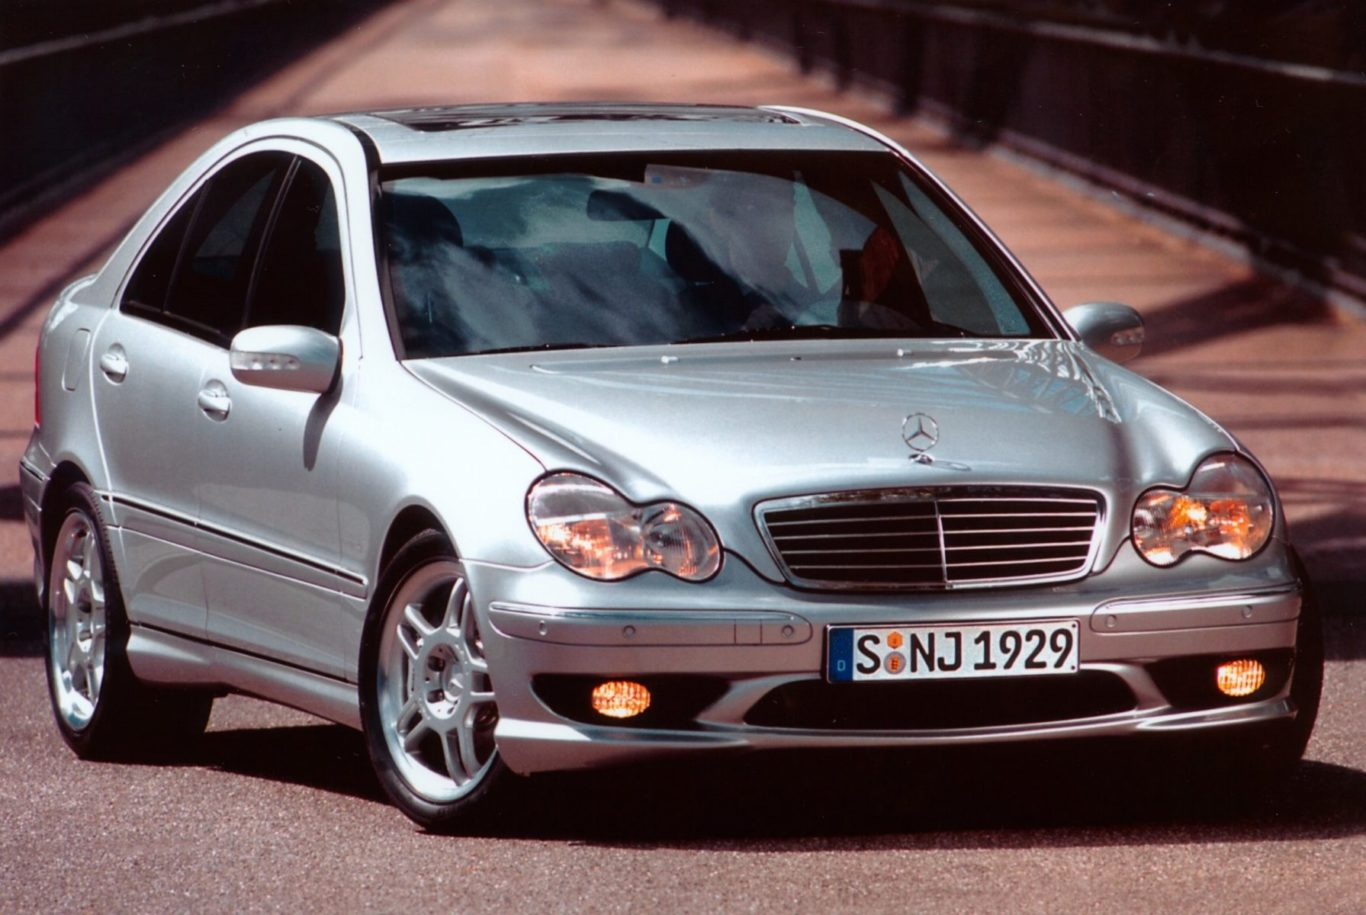 The Mercedes C32 was based on the regular C-Class